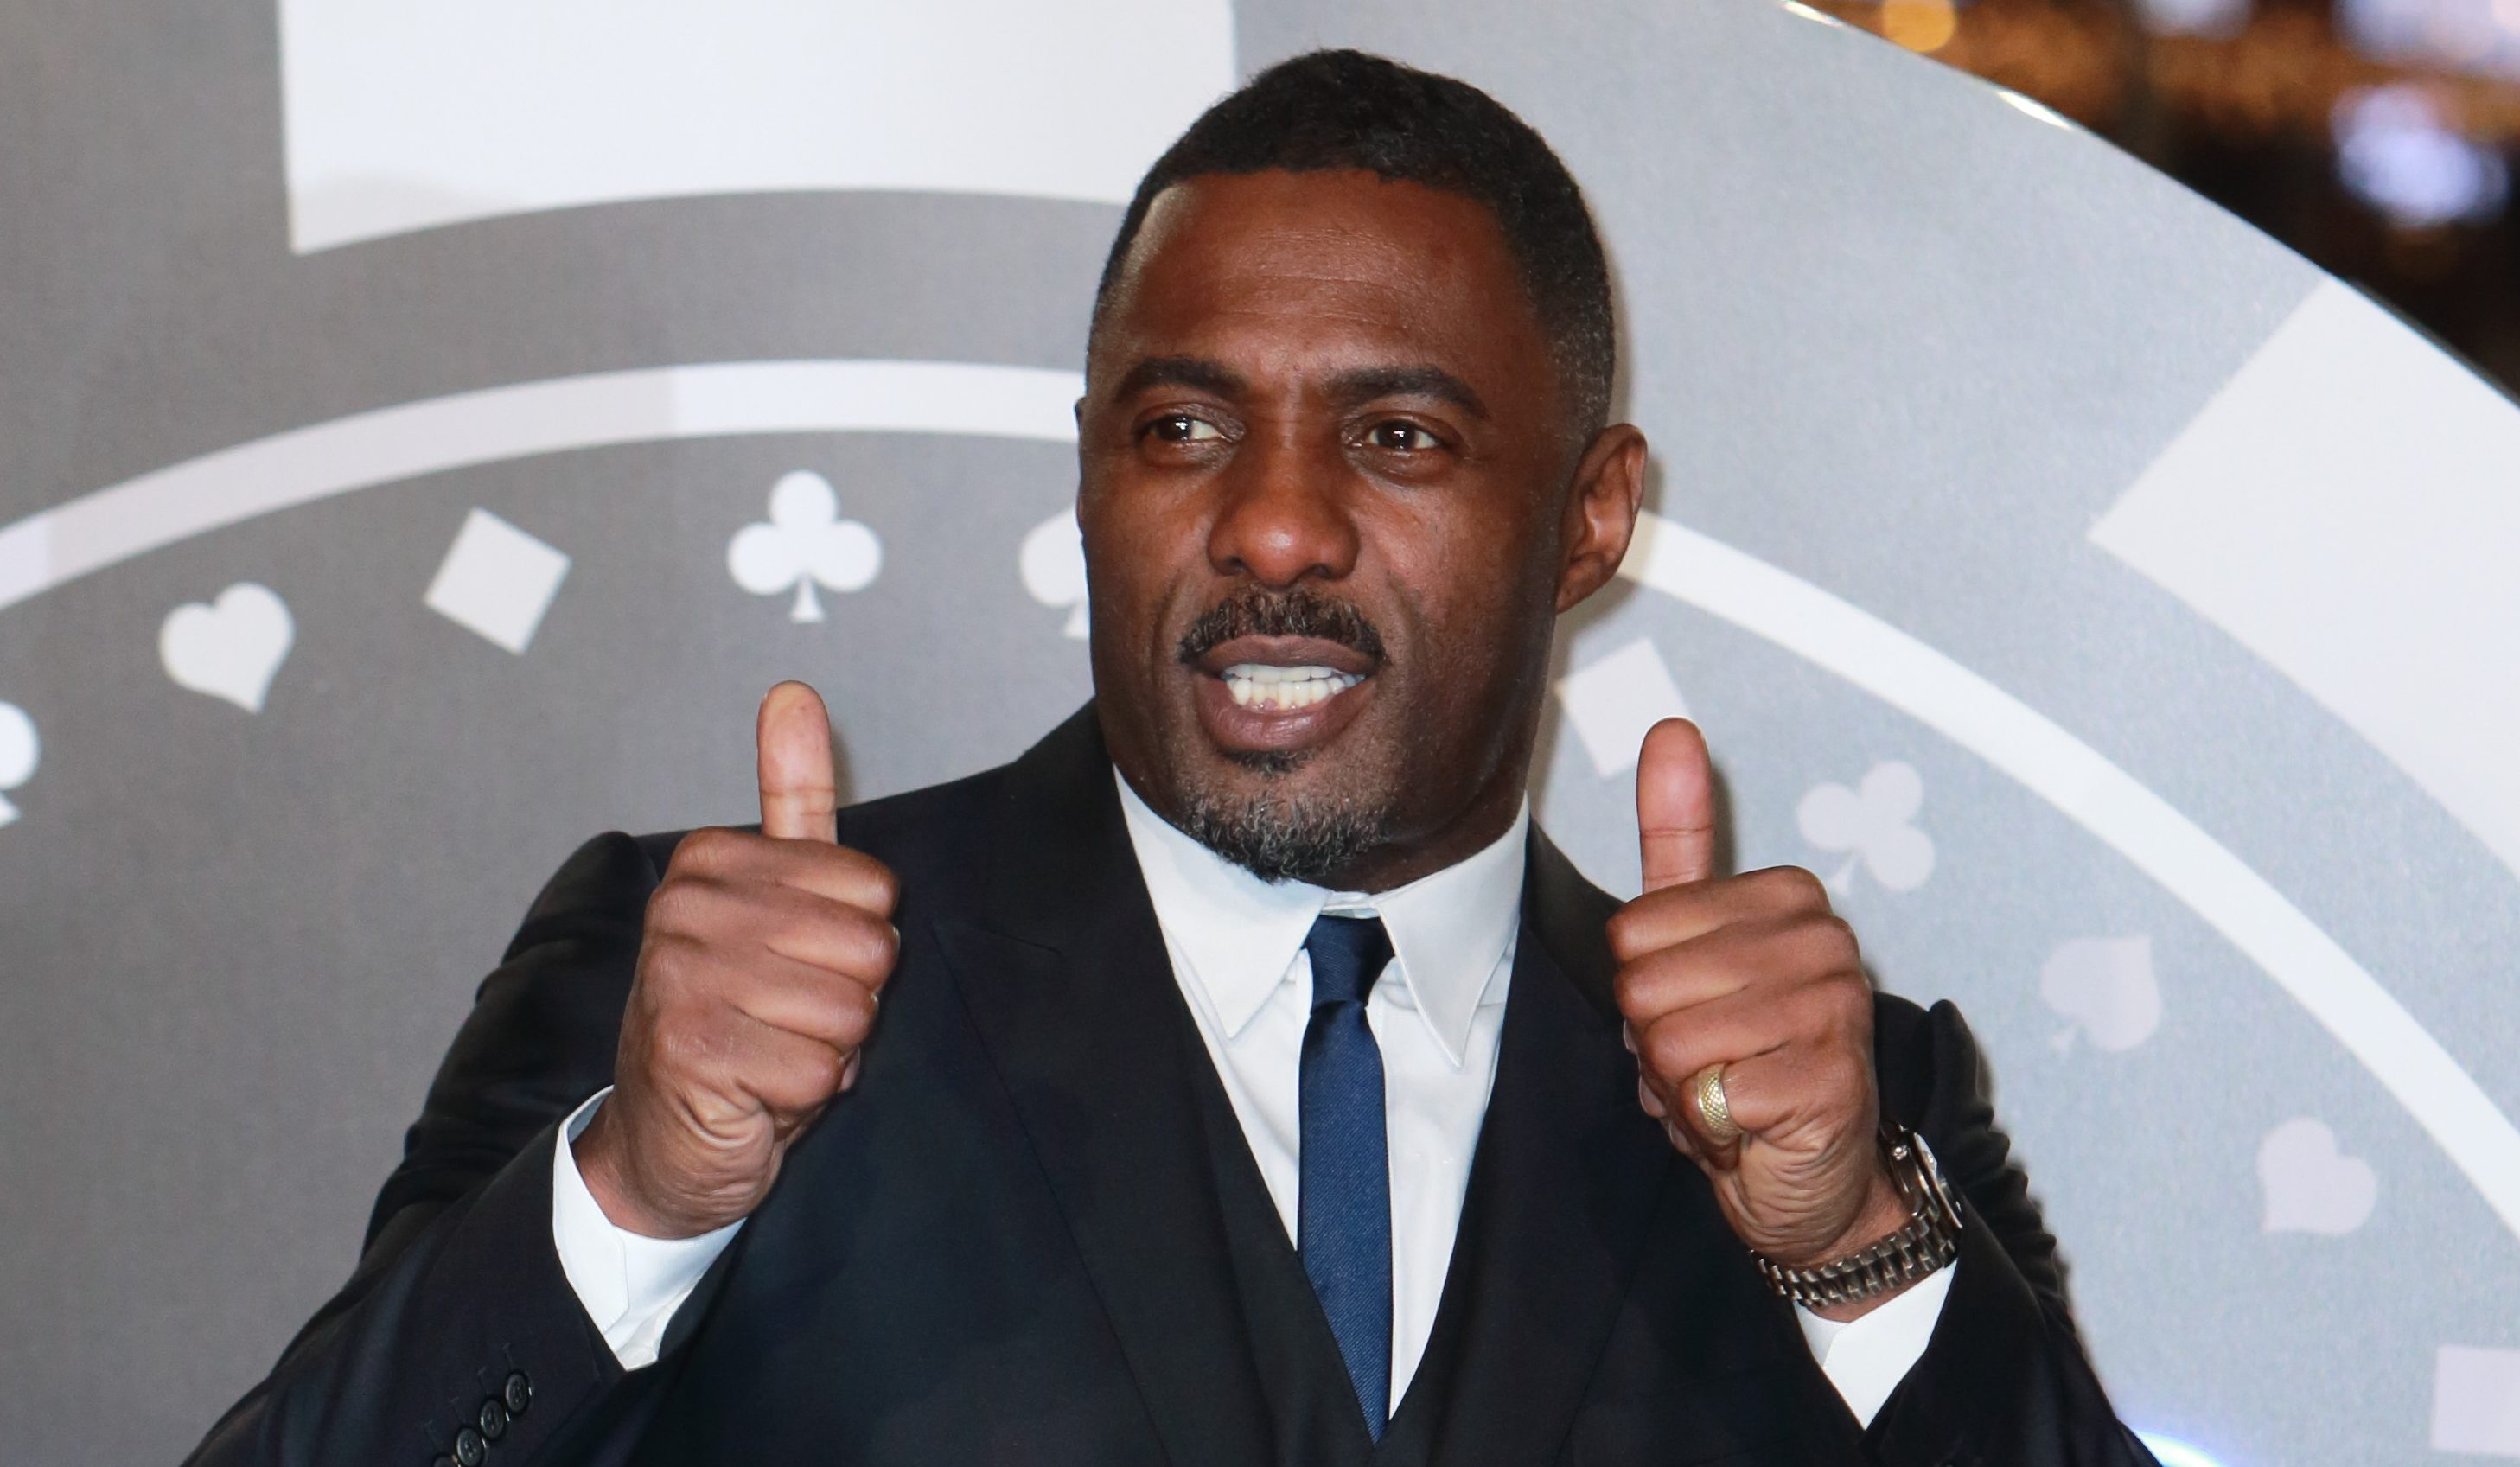 Idris Elba gets engaged to Sabrina Dhowre